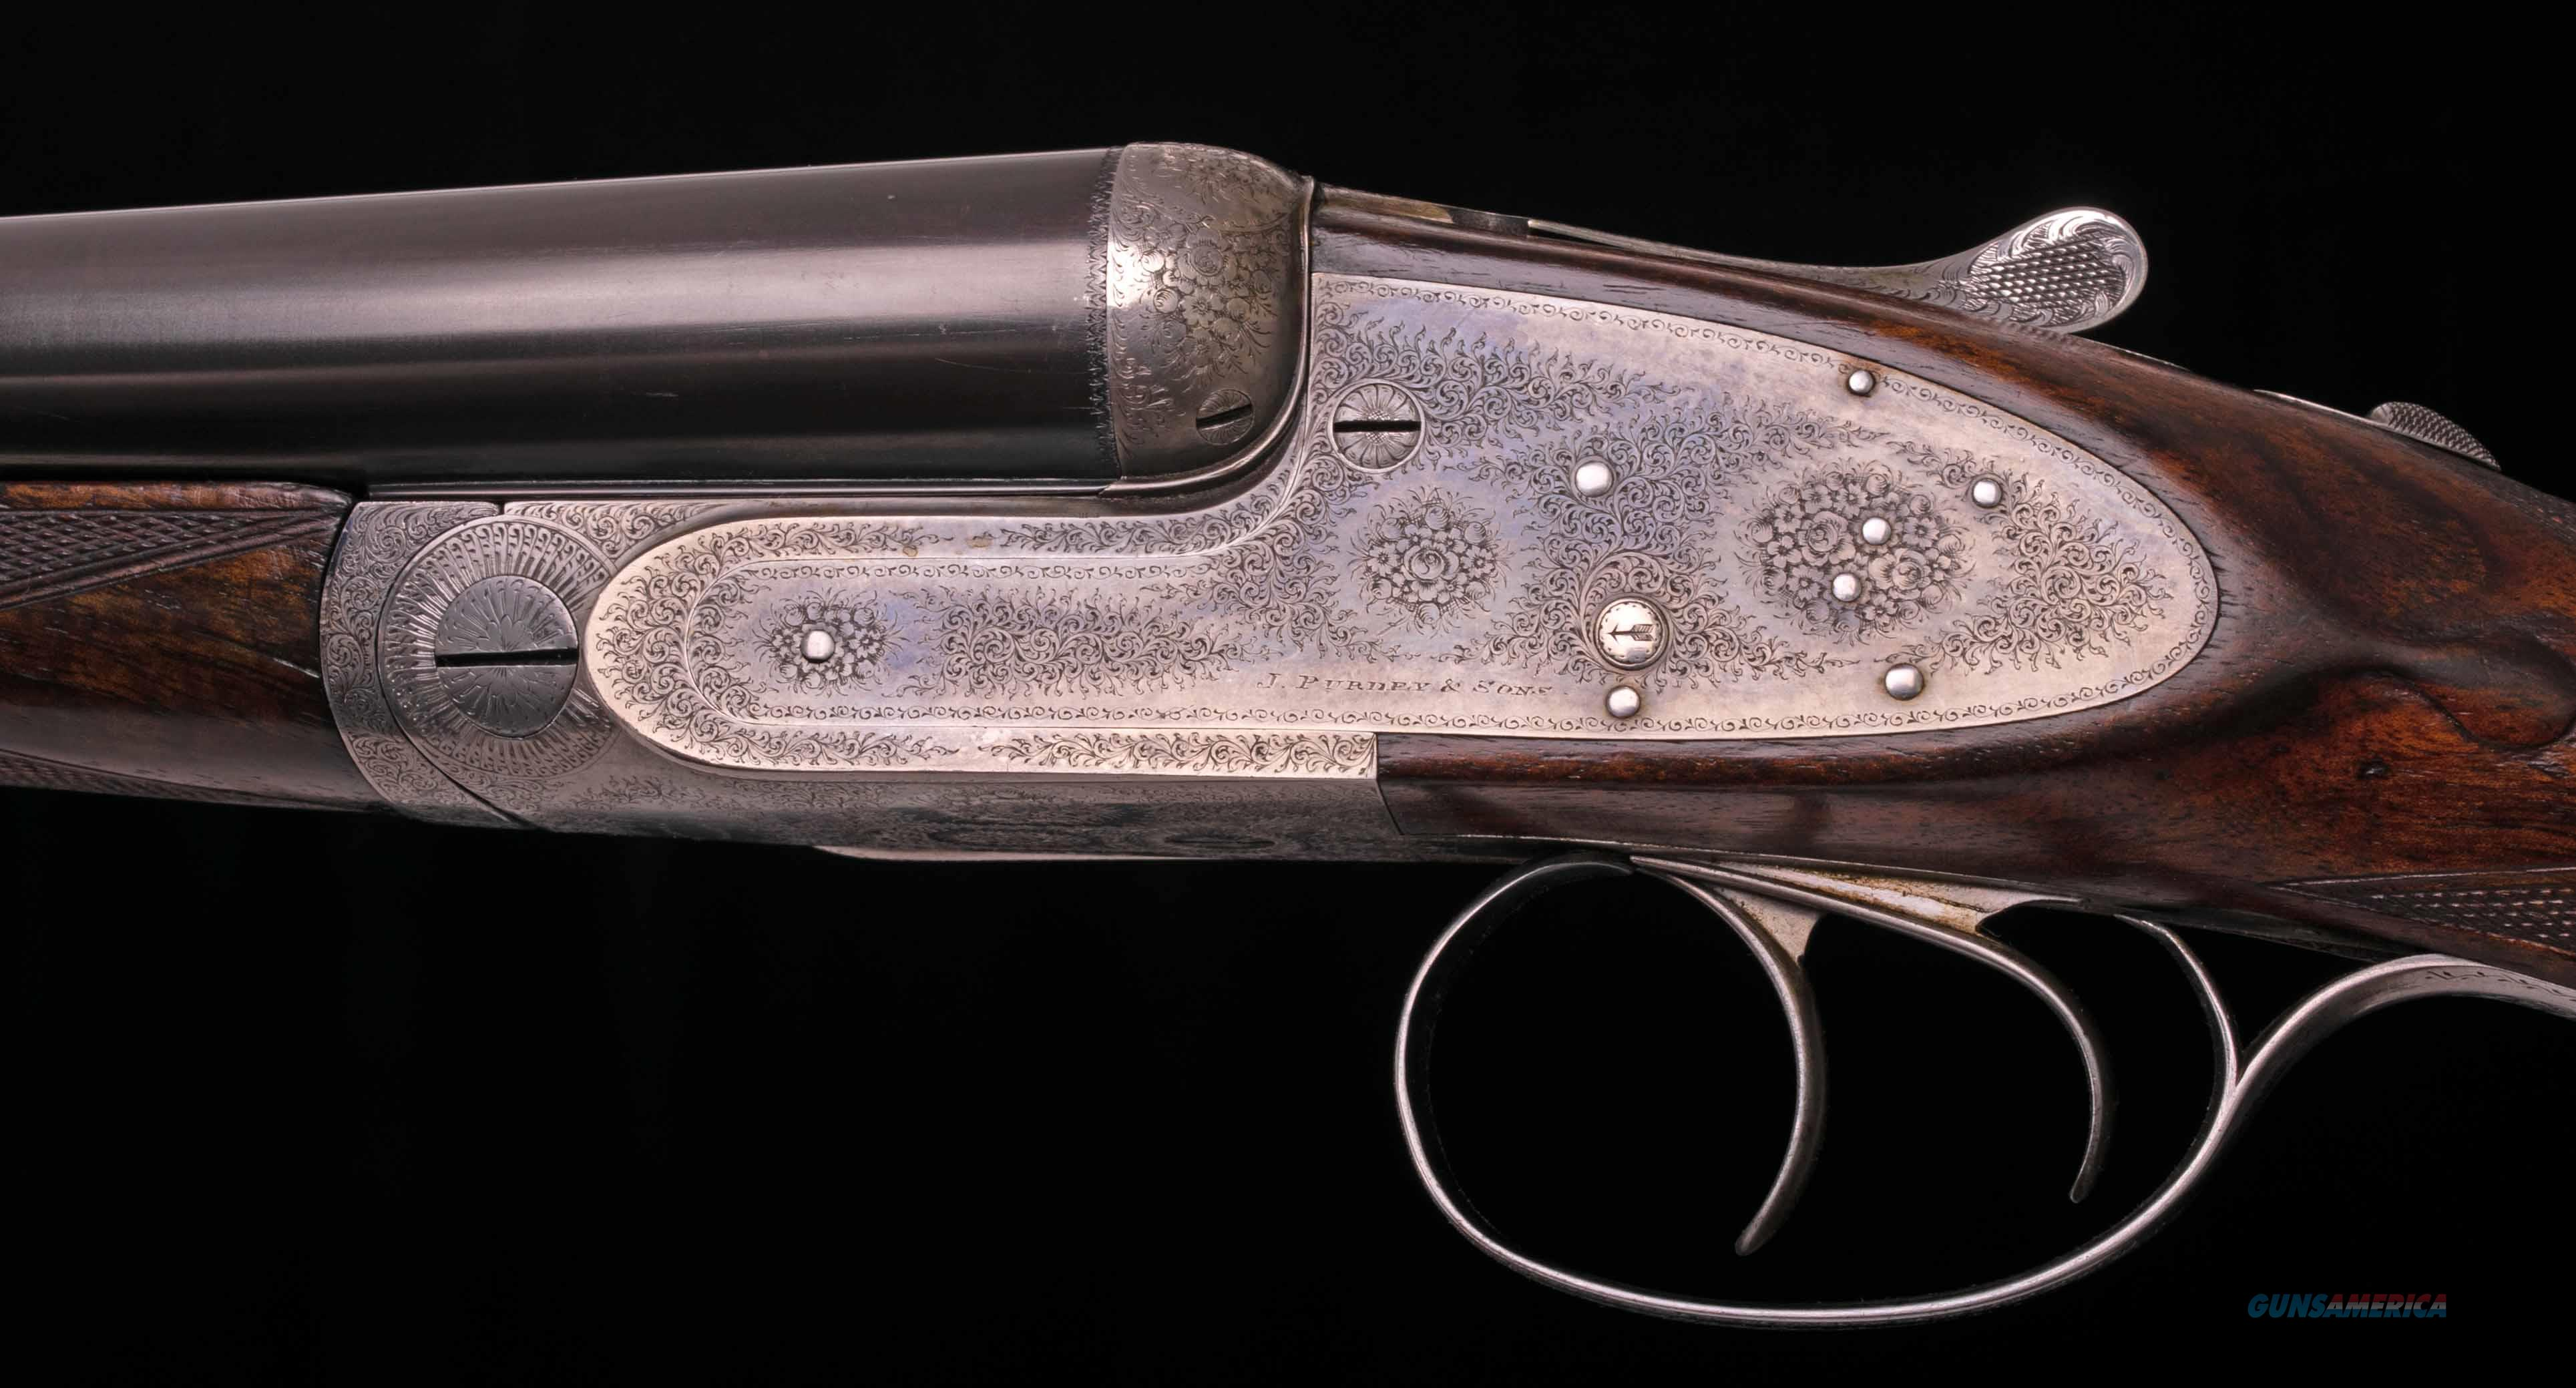 Purdey Best 12 Bore - SELF OPENING, CASED, IN PROOF, ANTIQUE, vintage firearms inc  Guns > Shotguns > Purdy Shotguns